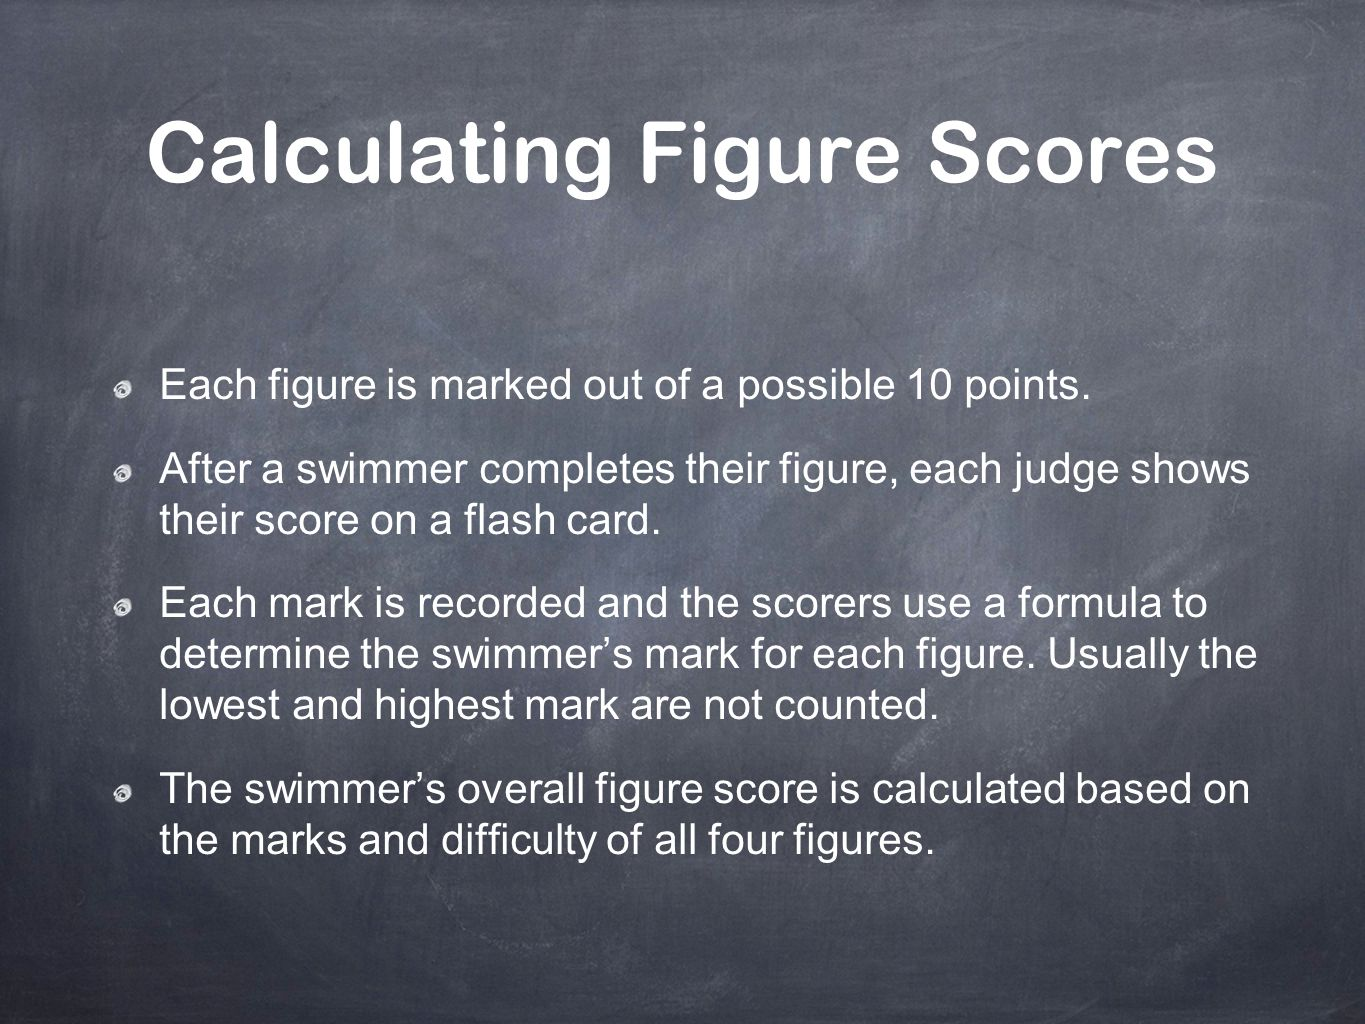 Calculating Figure Scores